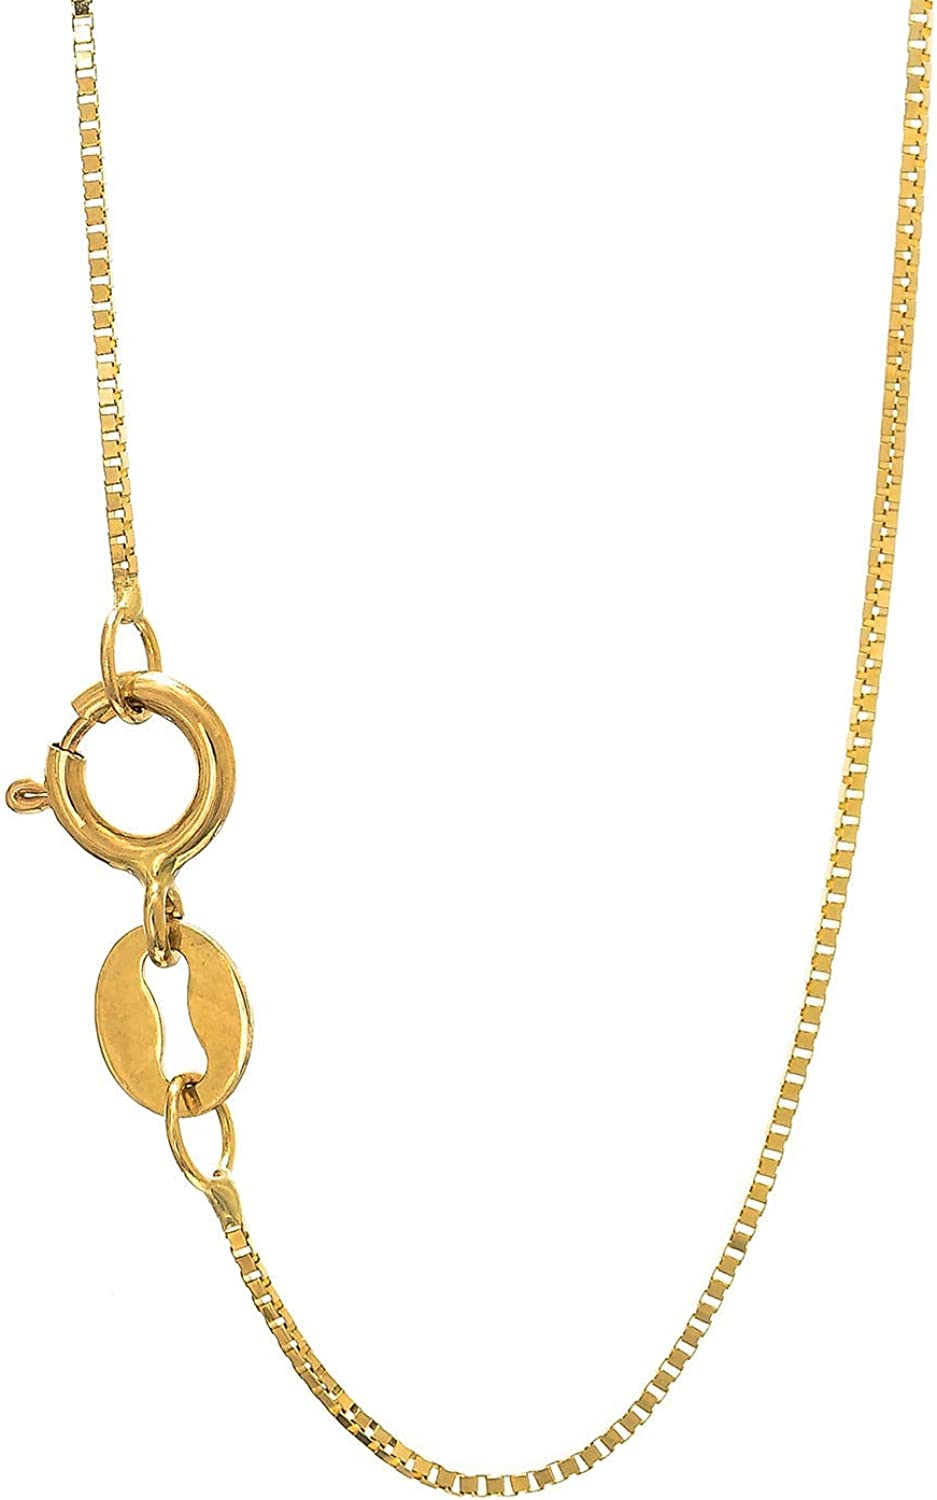 JewelStop 10k Solid Gold Yellow White Or Rose 0.6 mm Box Chain Necklace - 14 16 18 20 24